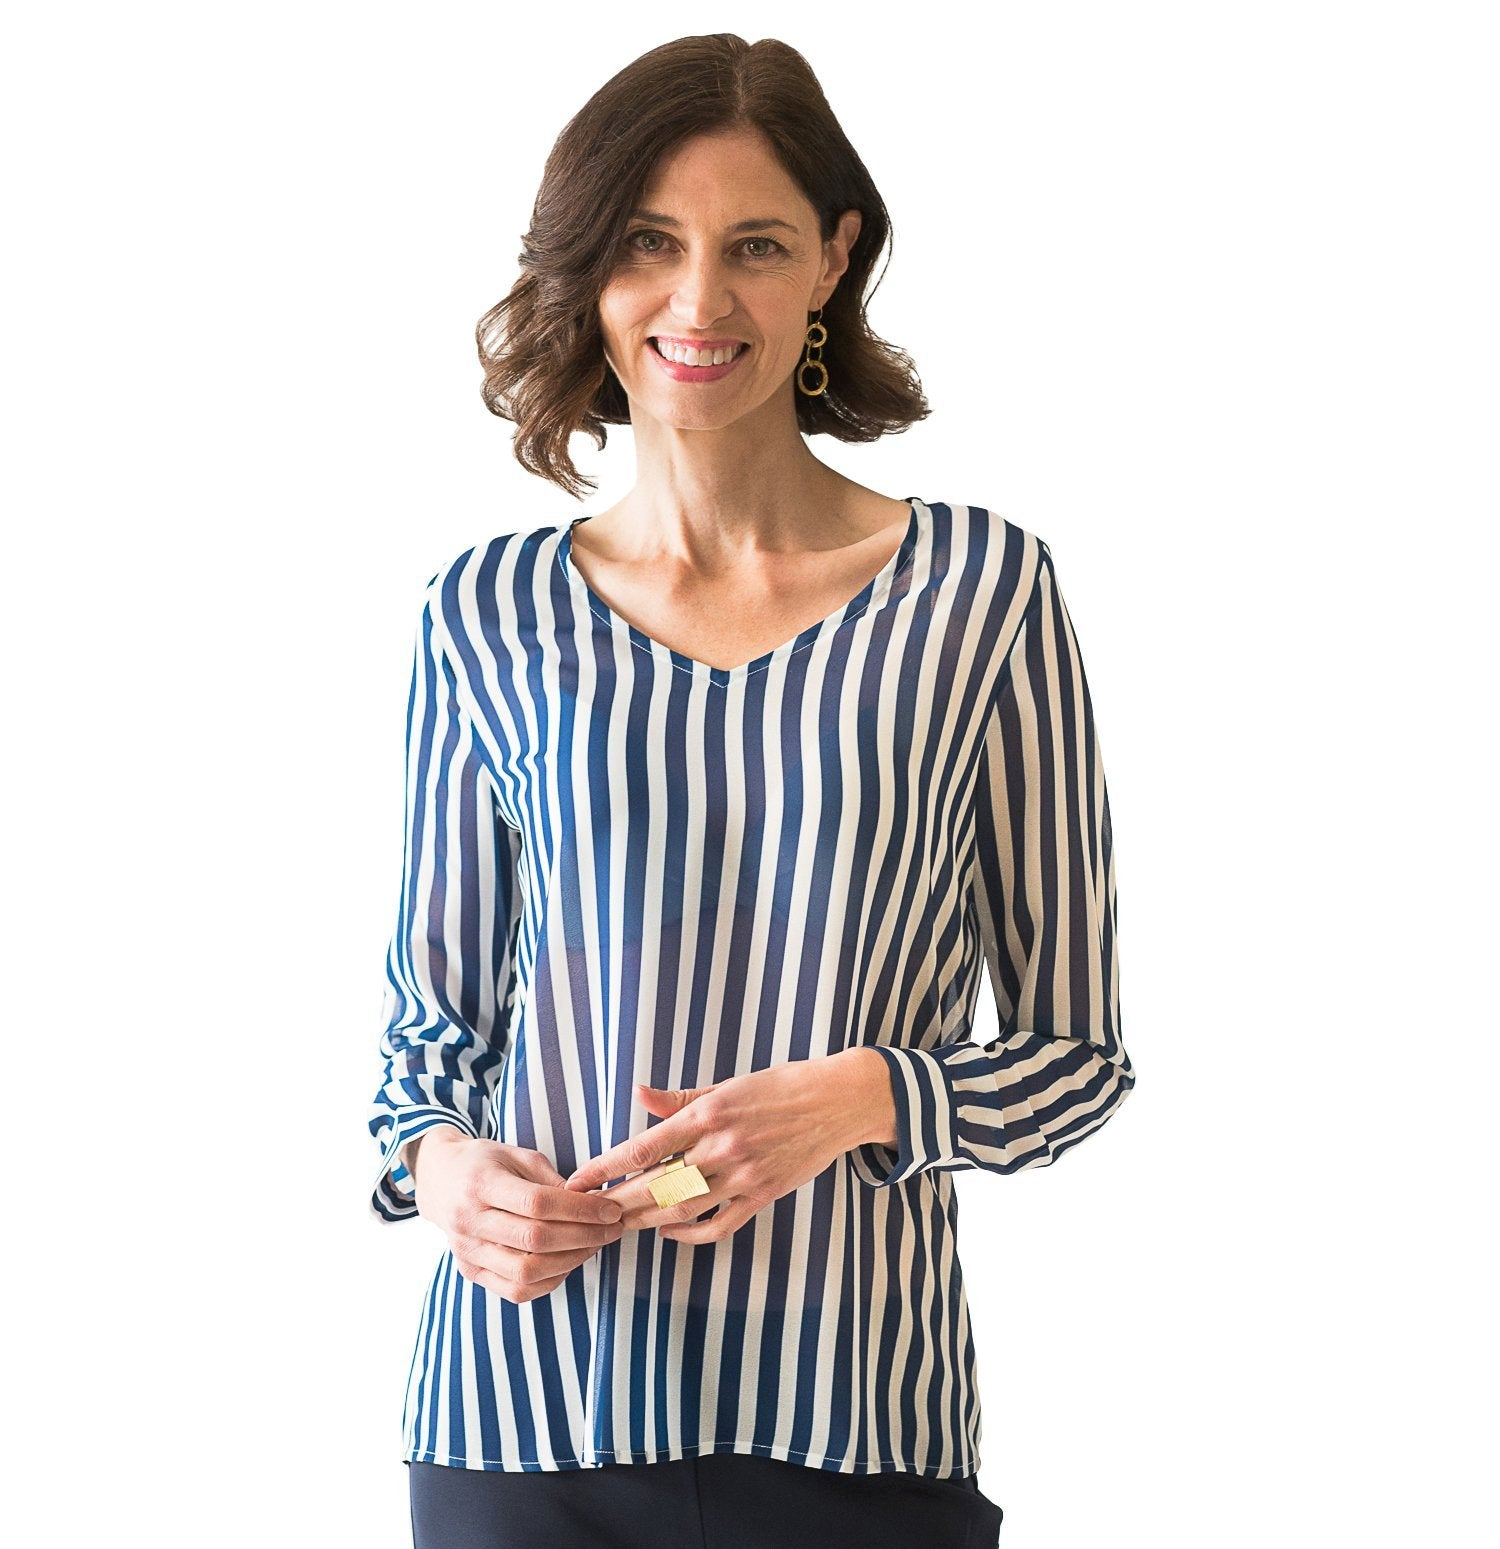 Haynes V-Neck Blouse in Navy Stripe - Elizabeth Ackerman New York